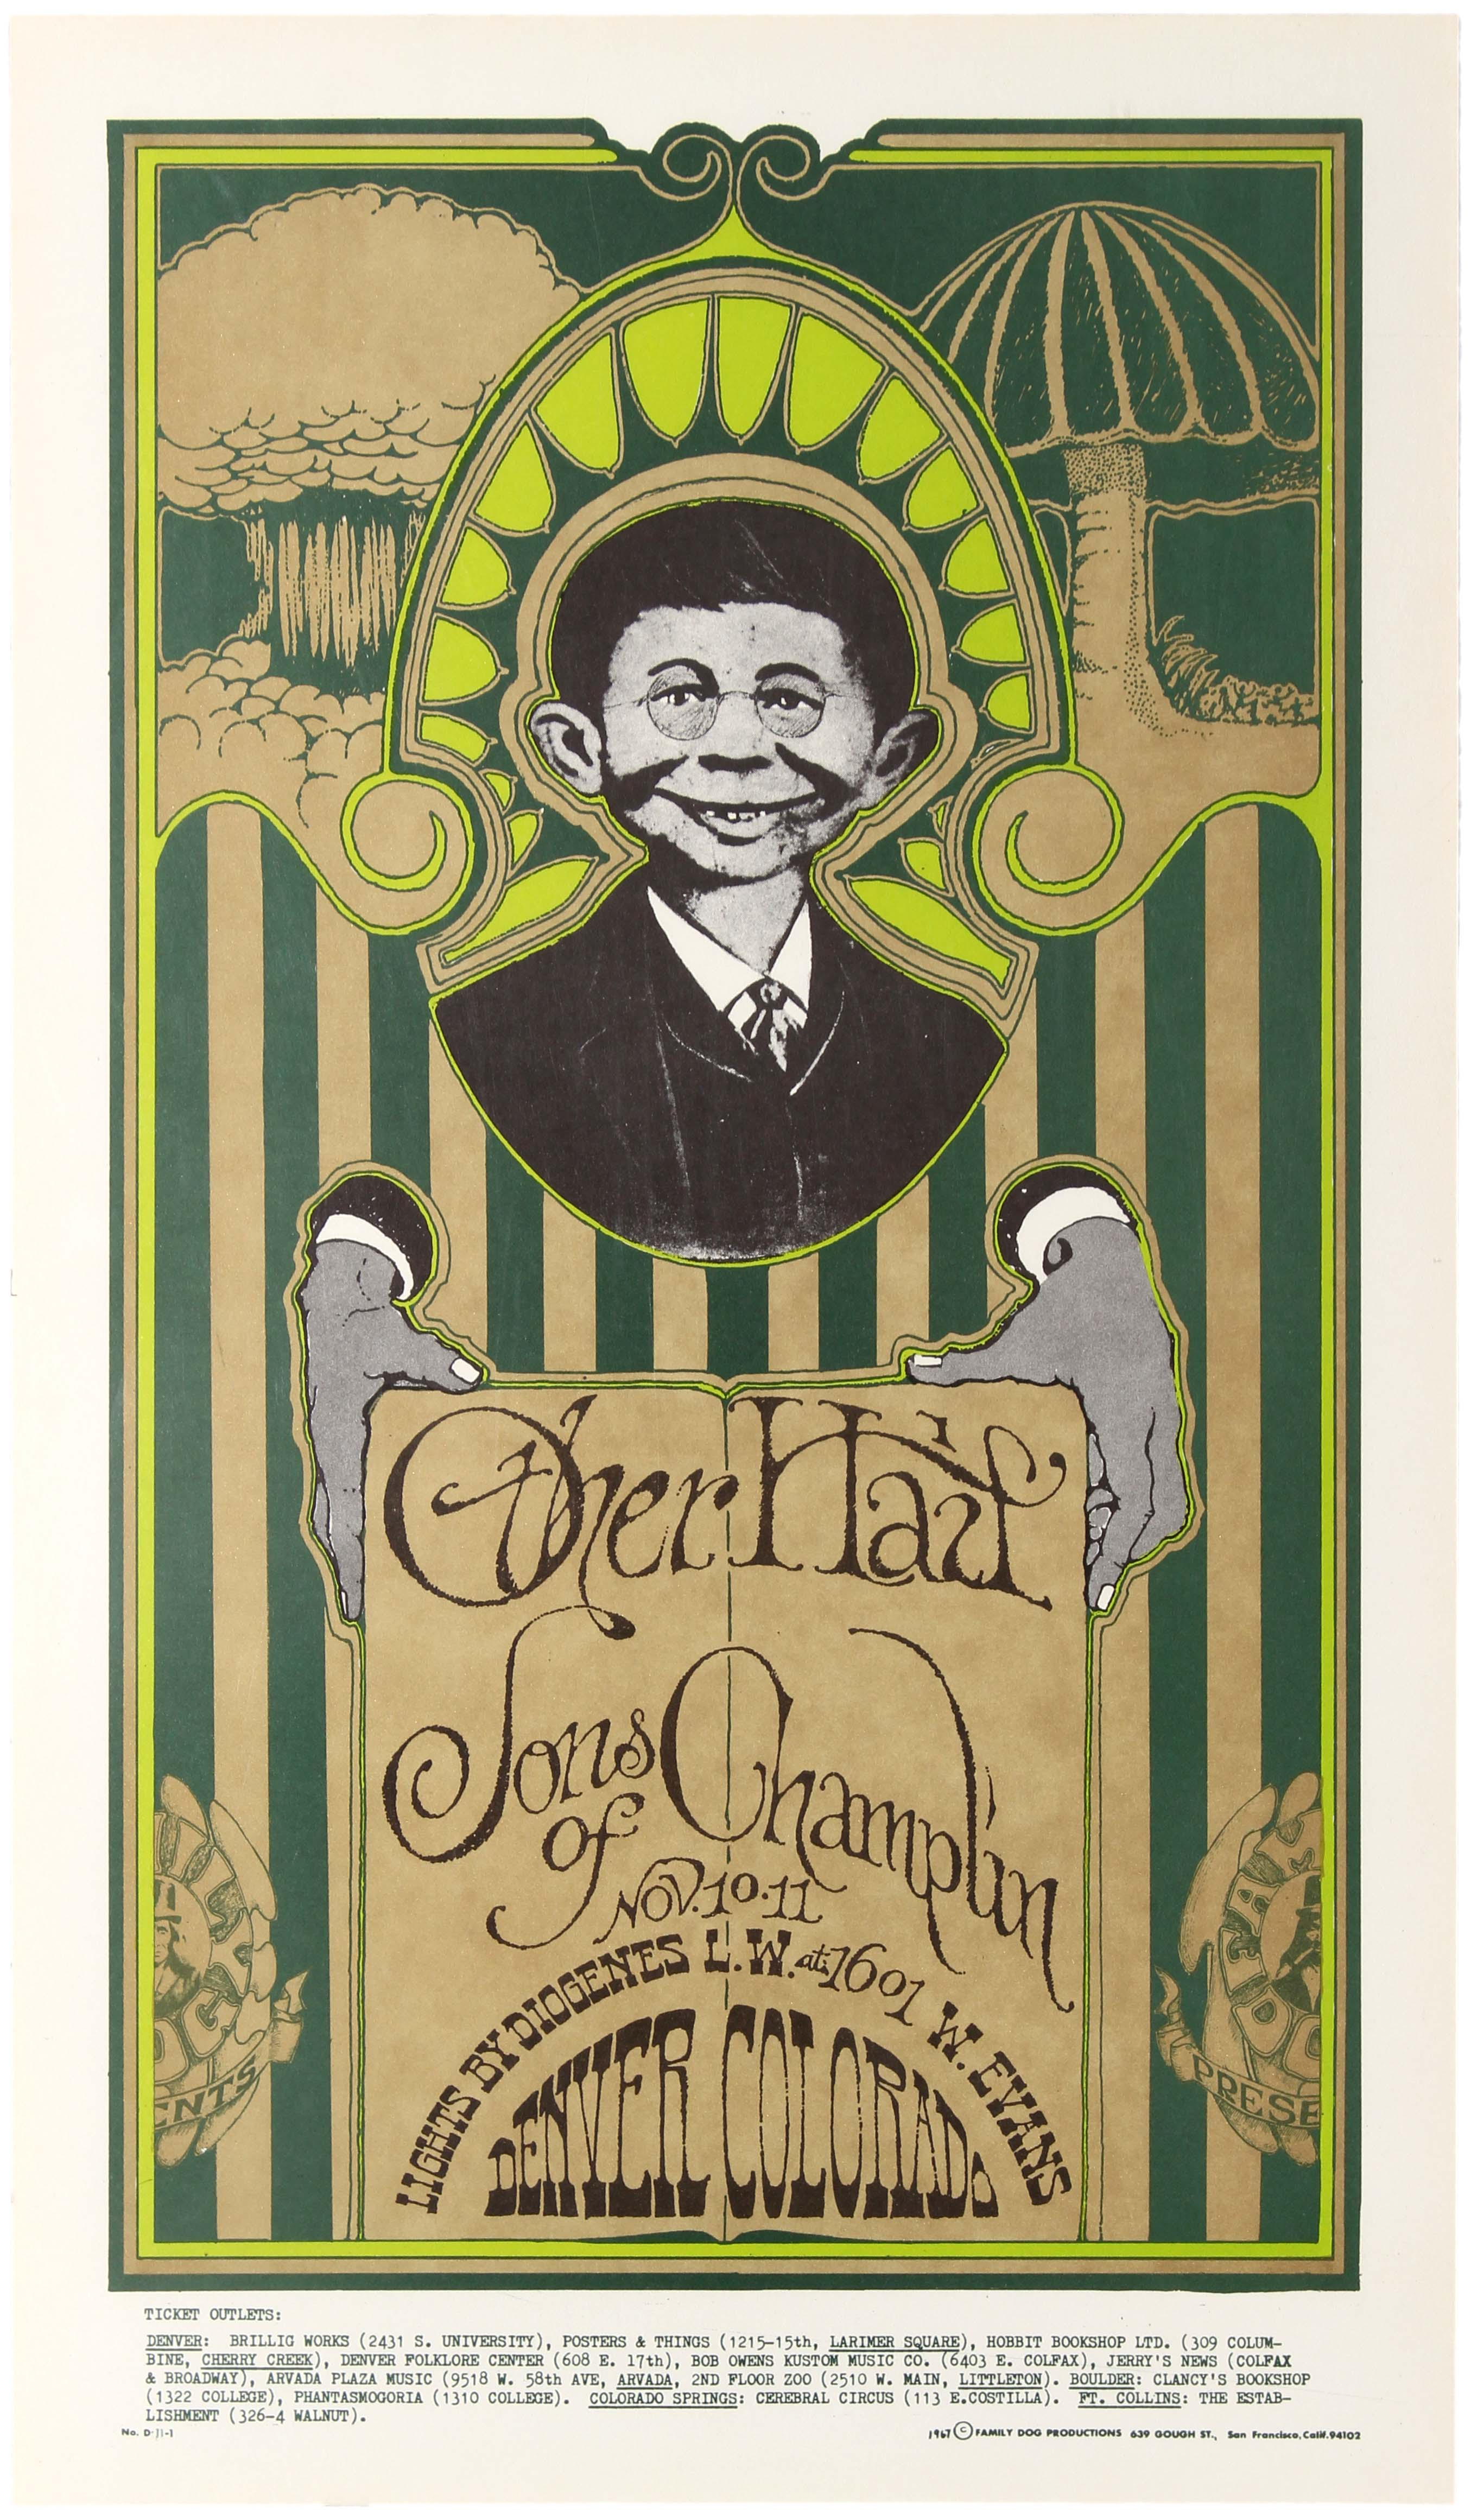 Lot 408 - Rock Concert Poster Other Half & Sons of Champlin